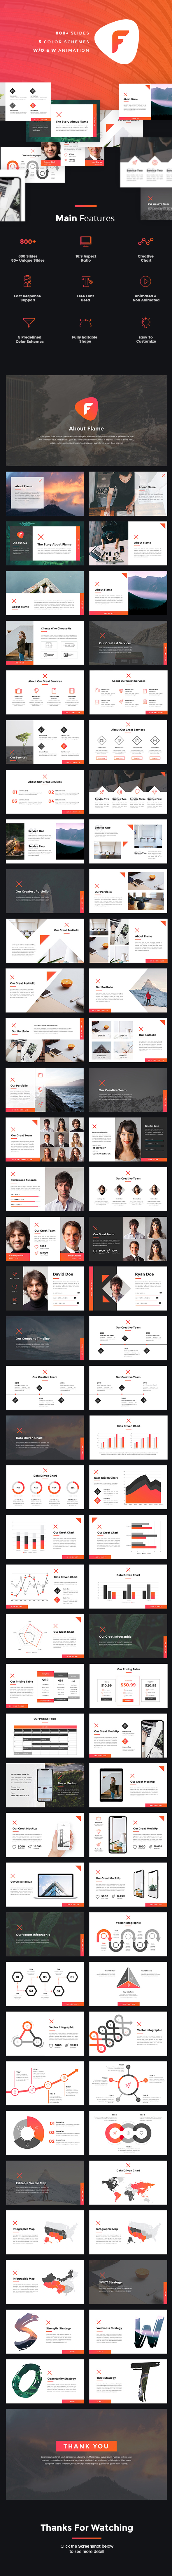 Flame - Creative Keynote Template - Creative Keynote Templates